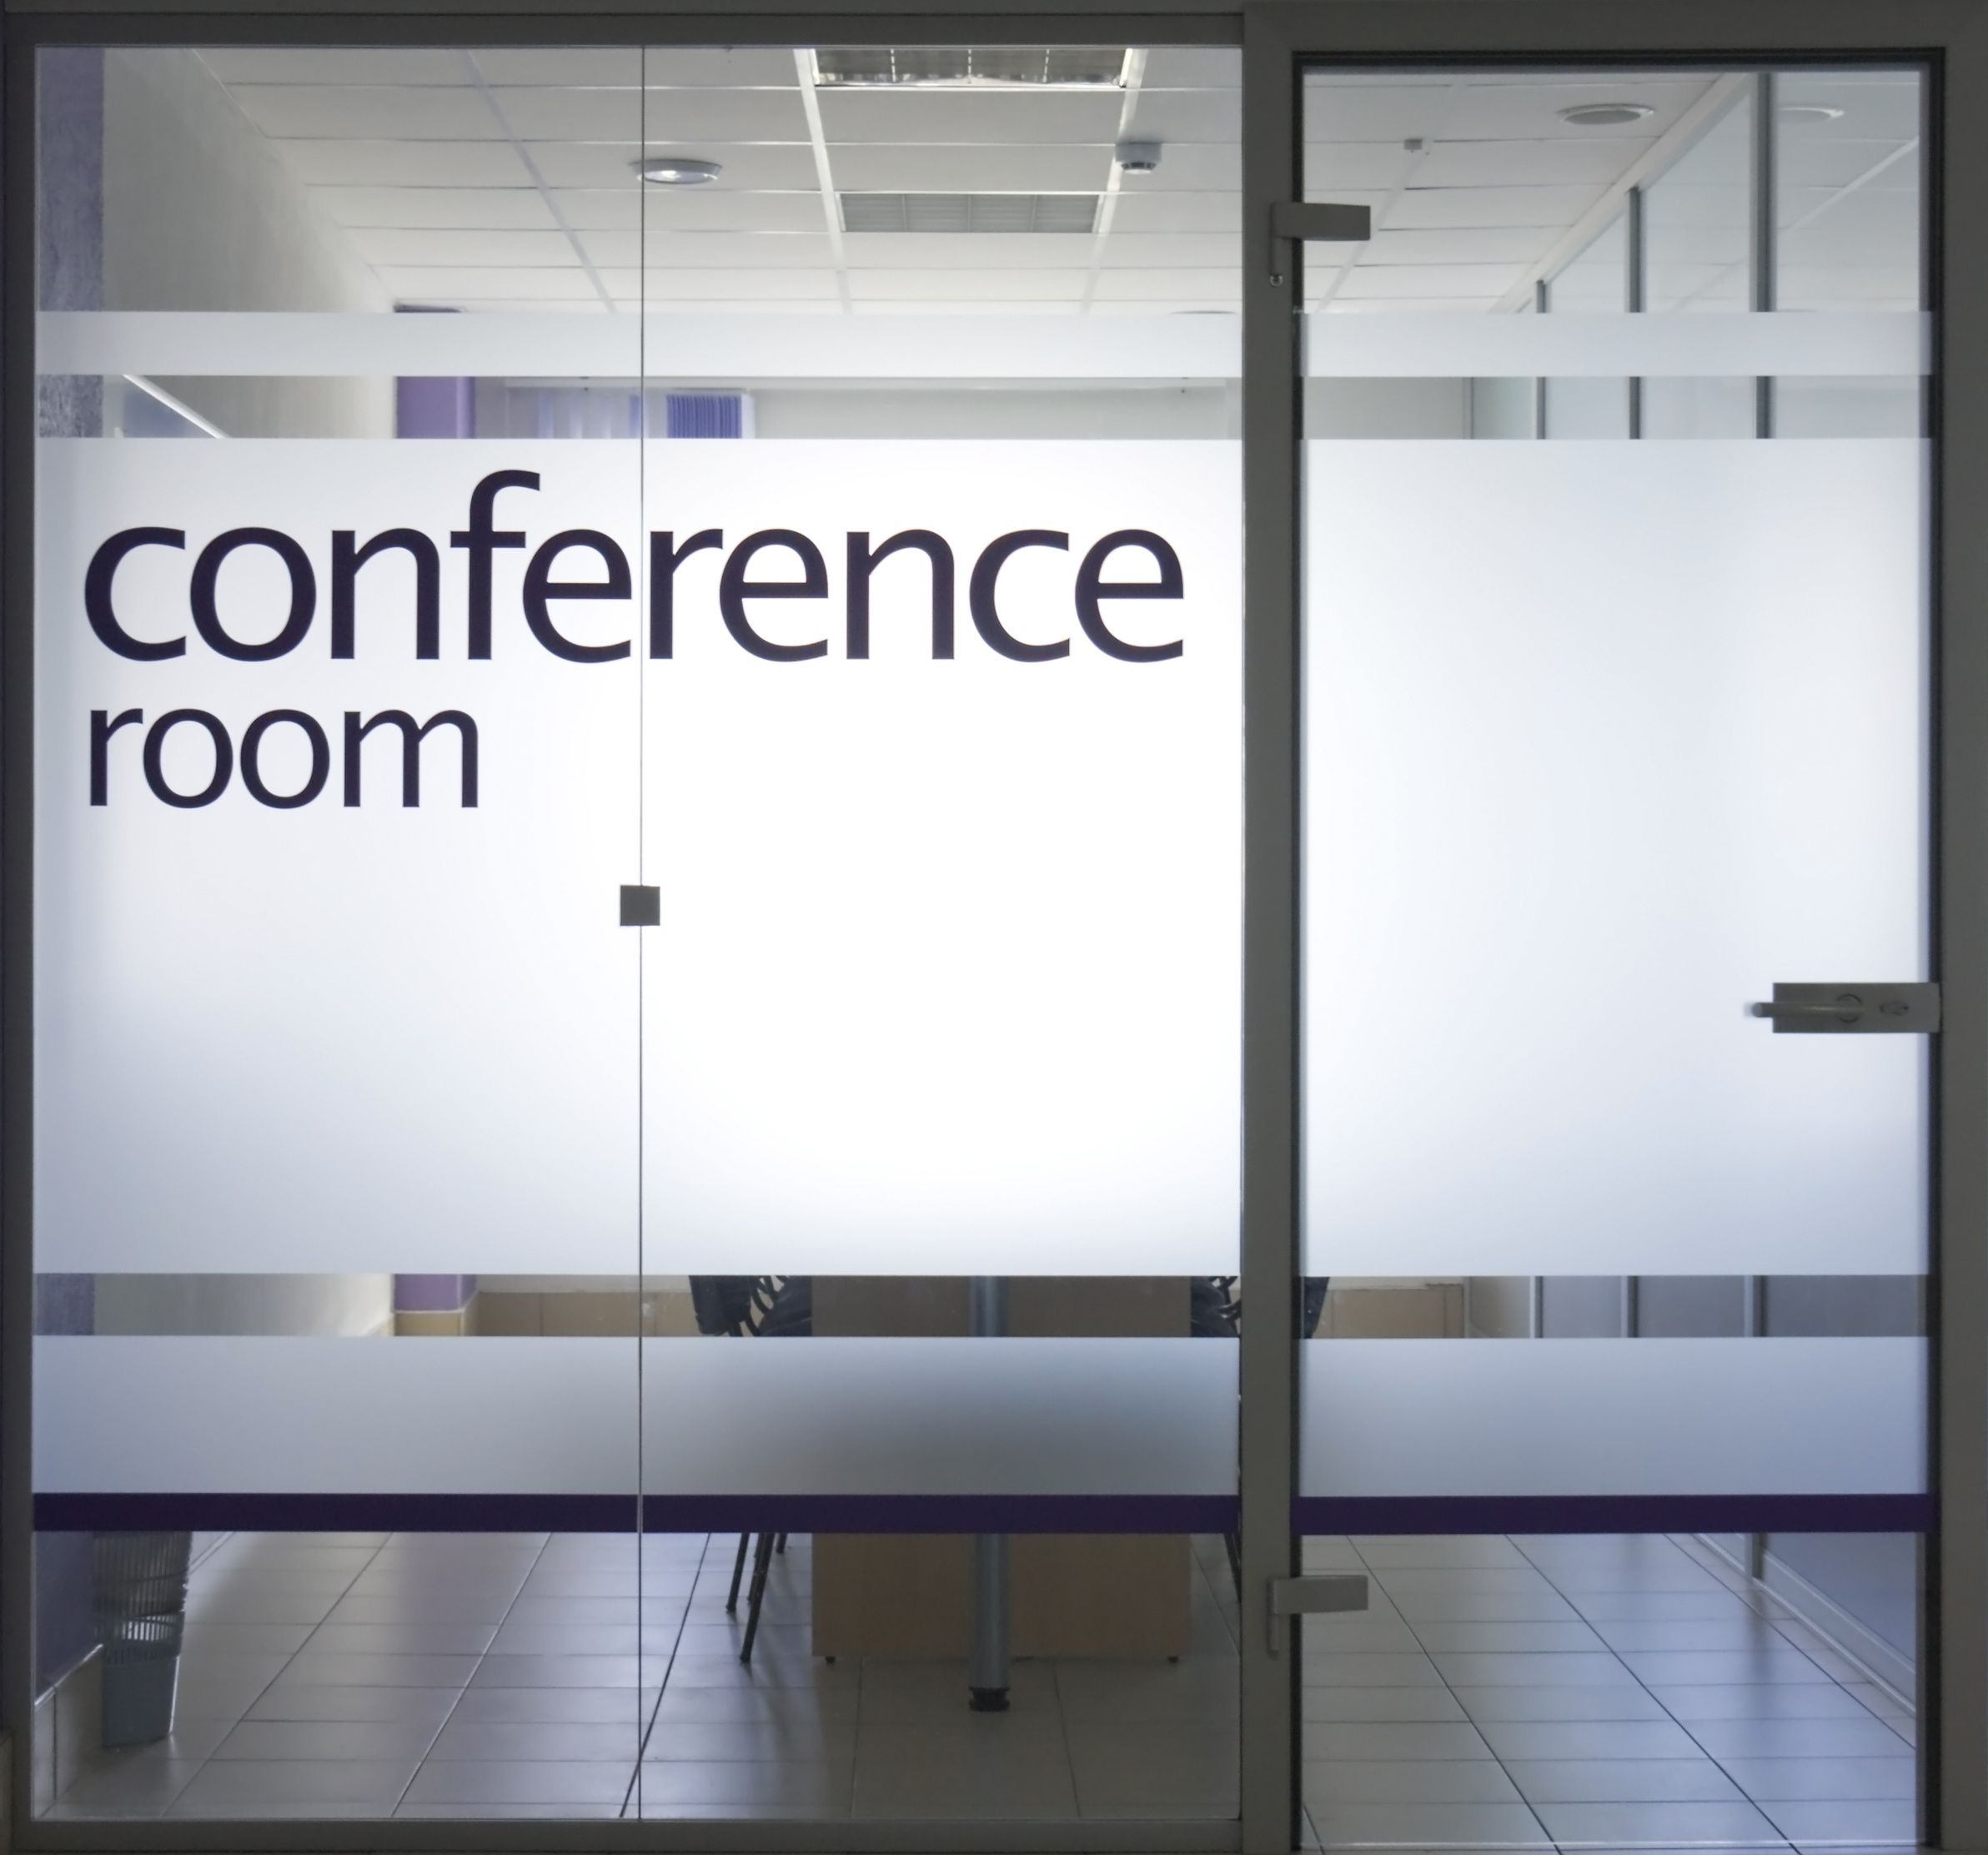 Glass Door And Window Into Conference Room Commercial